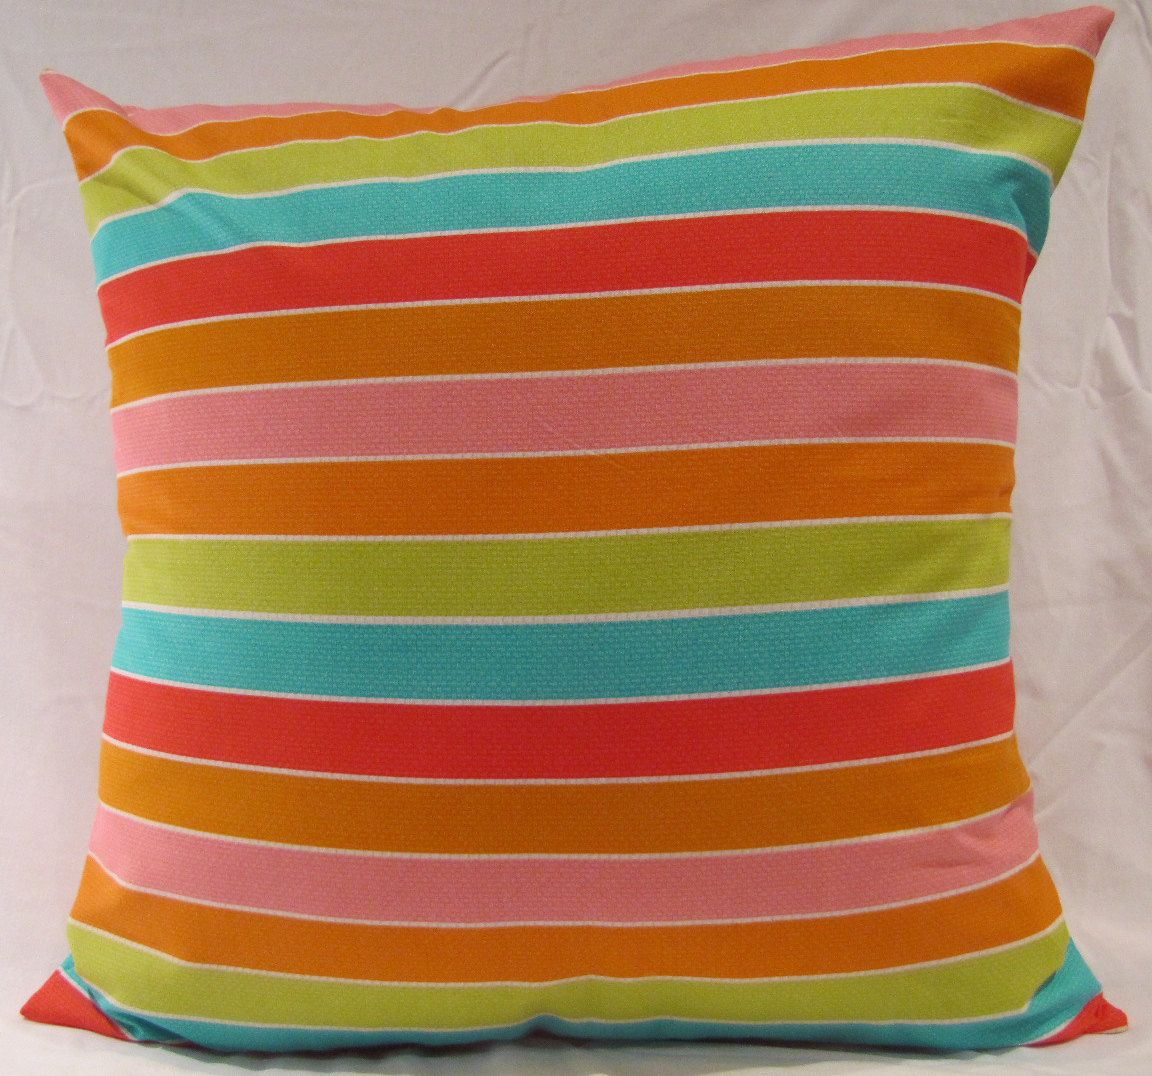 18X18 MultiColoured Striped Pillow Cover by PlumPerfection on Etsy, $20.00